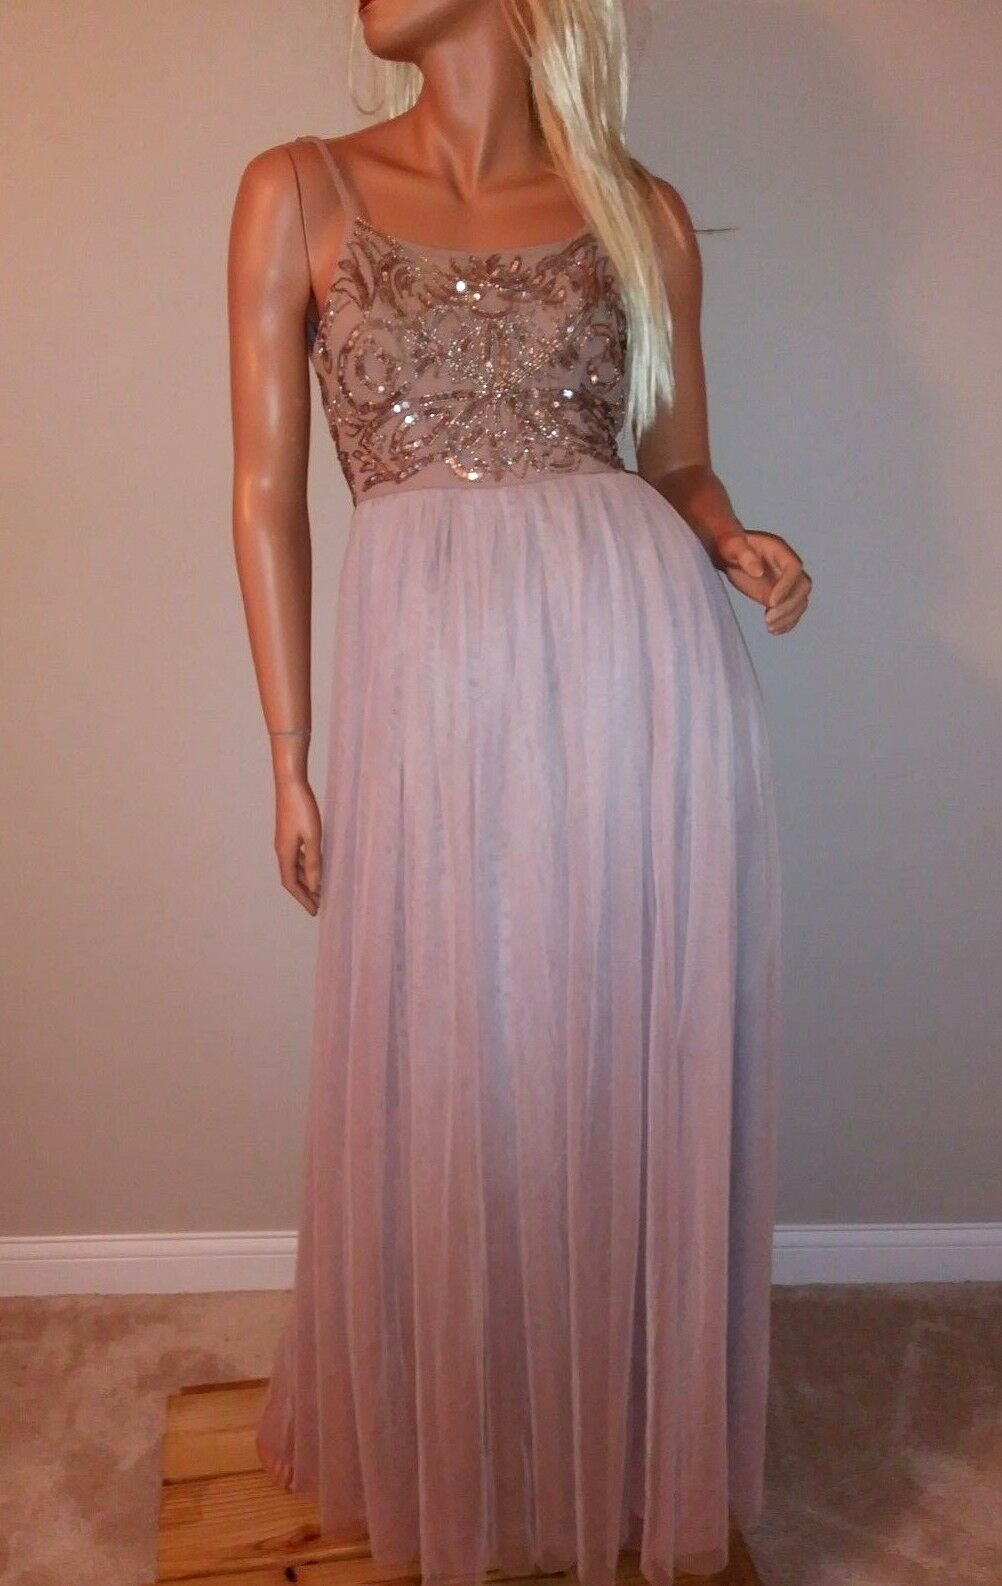 New  maya bridesmaid wedding cami strap  embellished tulle maxi dress us 12